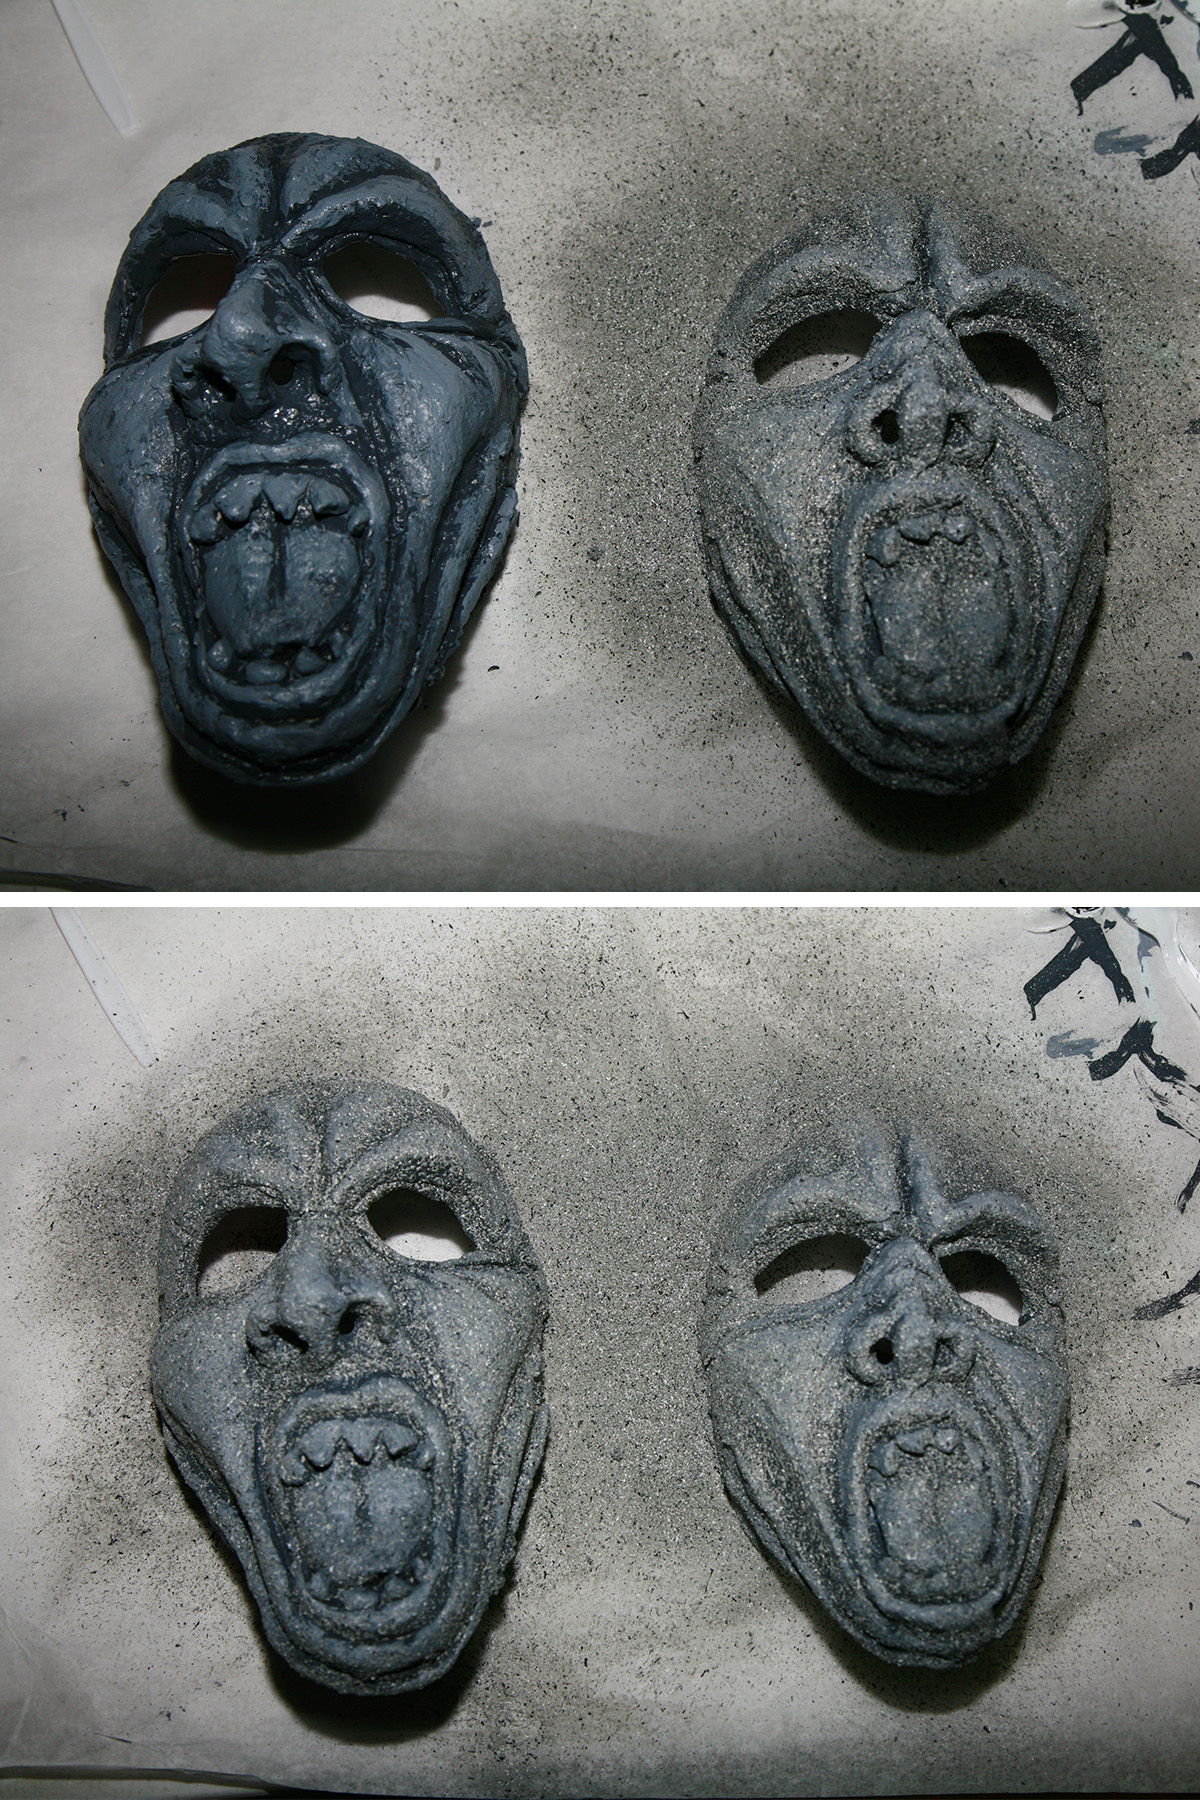 A two part image showing grey face masks being sprayed with stone texture paint.